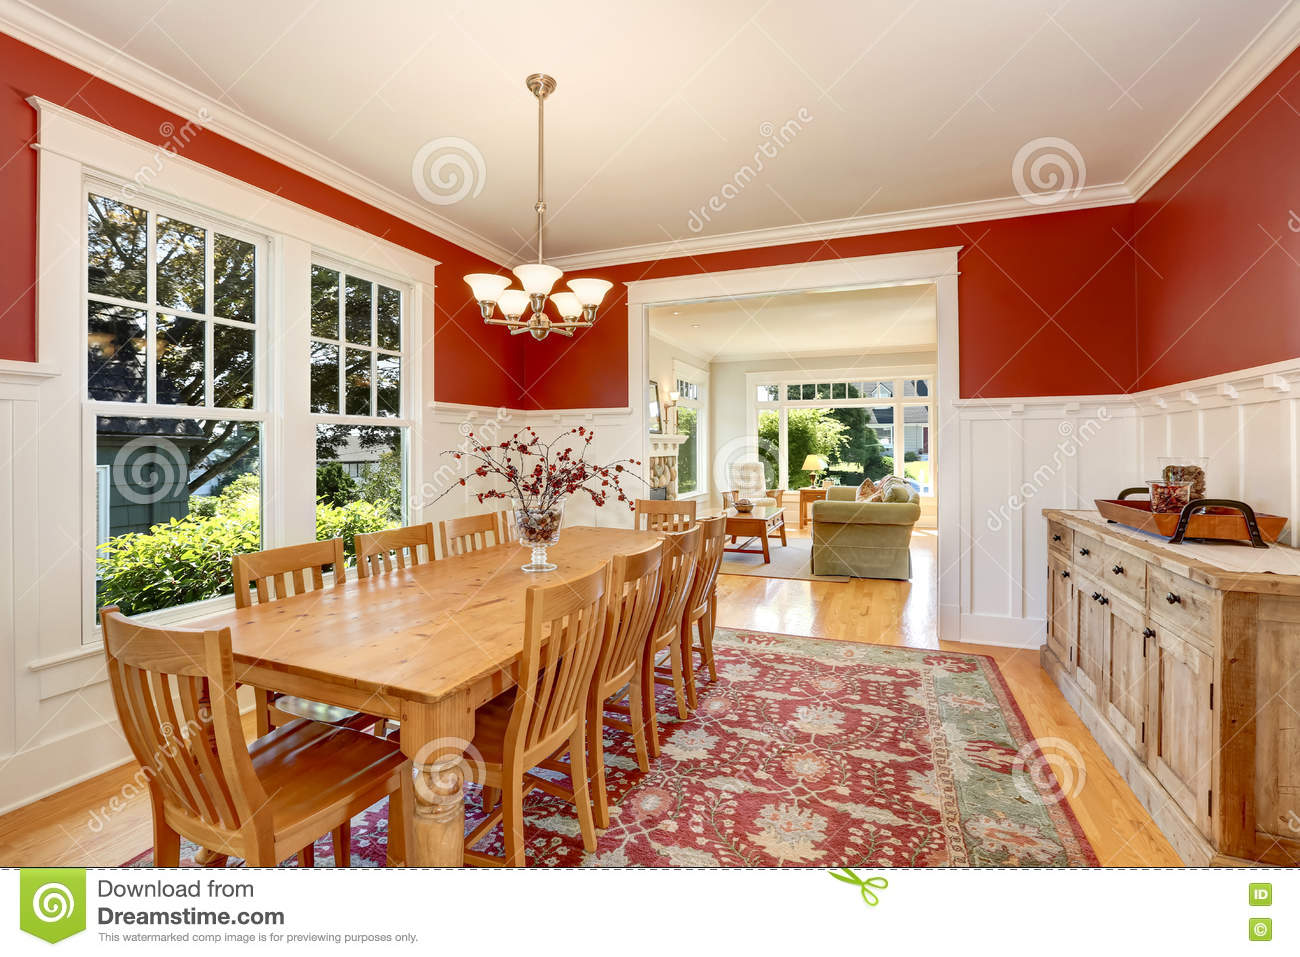 Red tones interior of american classic dining room stock for American classic interior